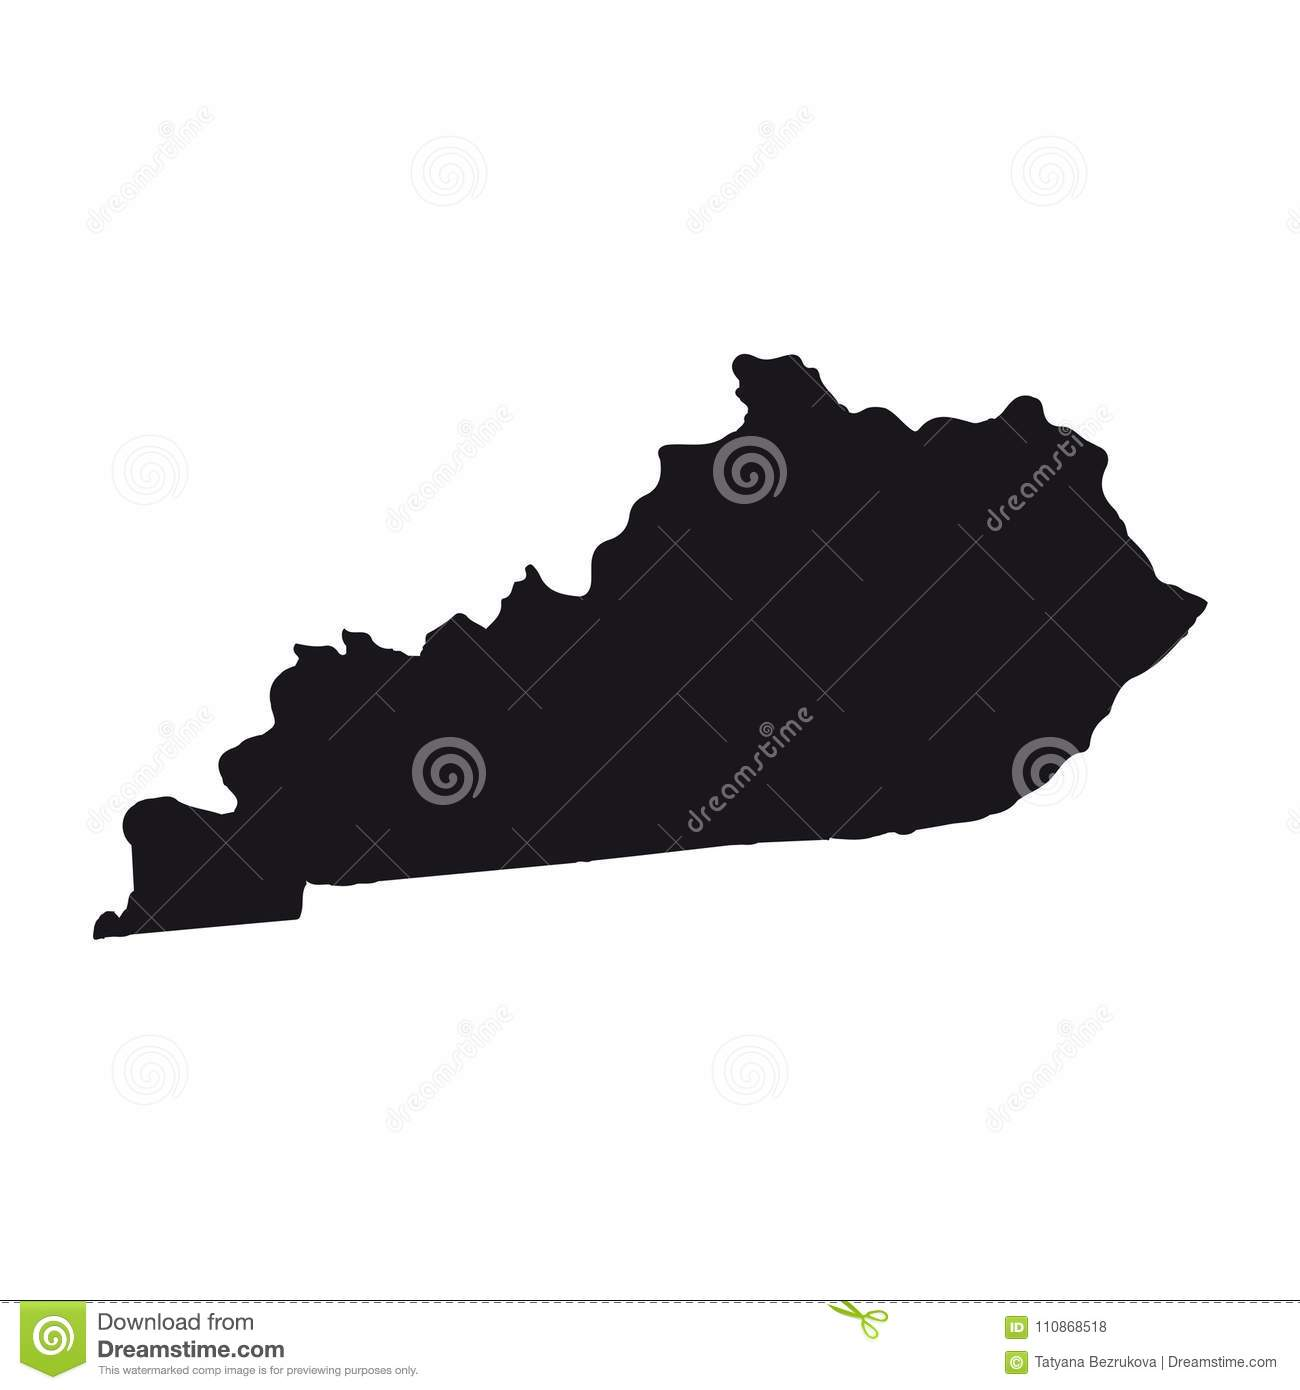 Map Of The U.S. State Of Kentucky On A White Background. Stock ...